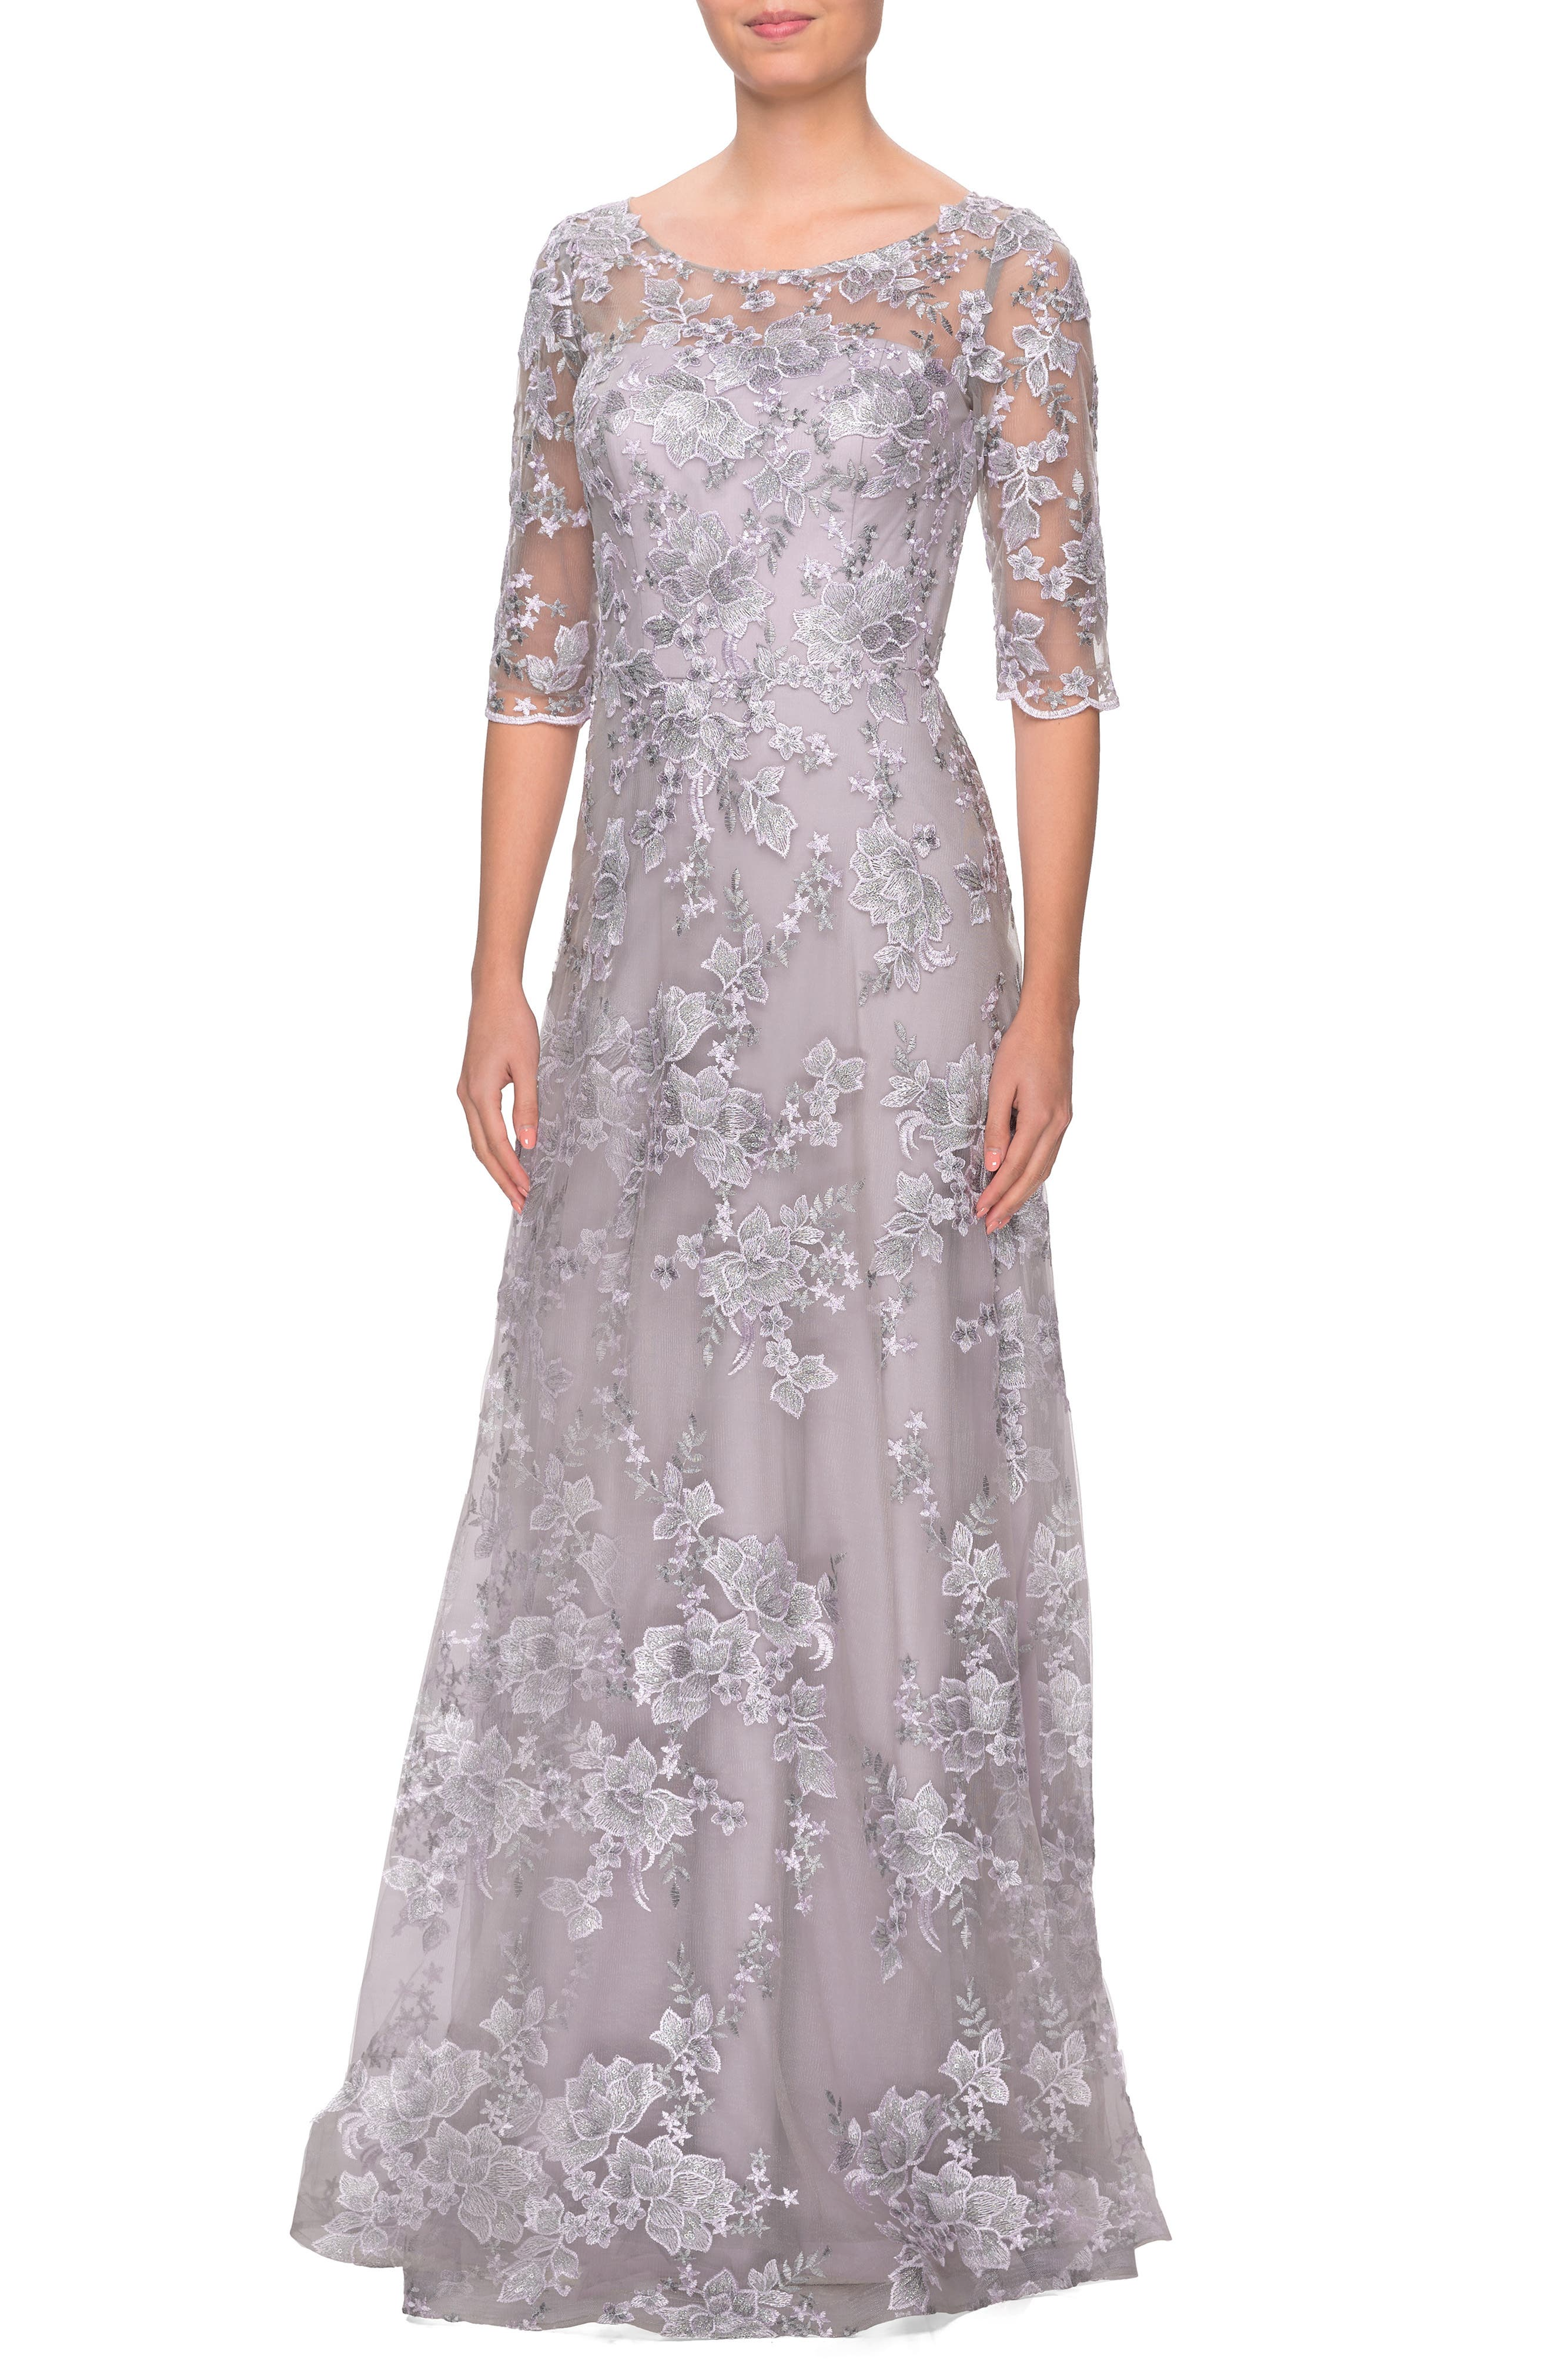 Let them see your sparkle before you ever say a word in this gorgeous gown shimmering in lustrous lace left sheer at the yoke and sleeves for a dash of allure. Style Name: La Femme Shimmer Lace A-Line Gown. Style Number: 6010066. Available in stores.